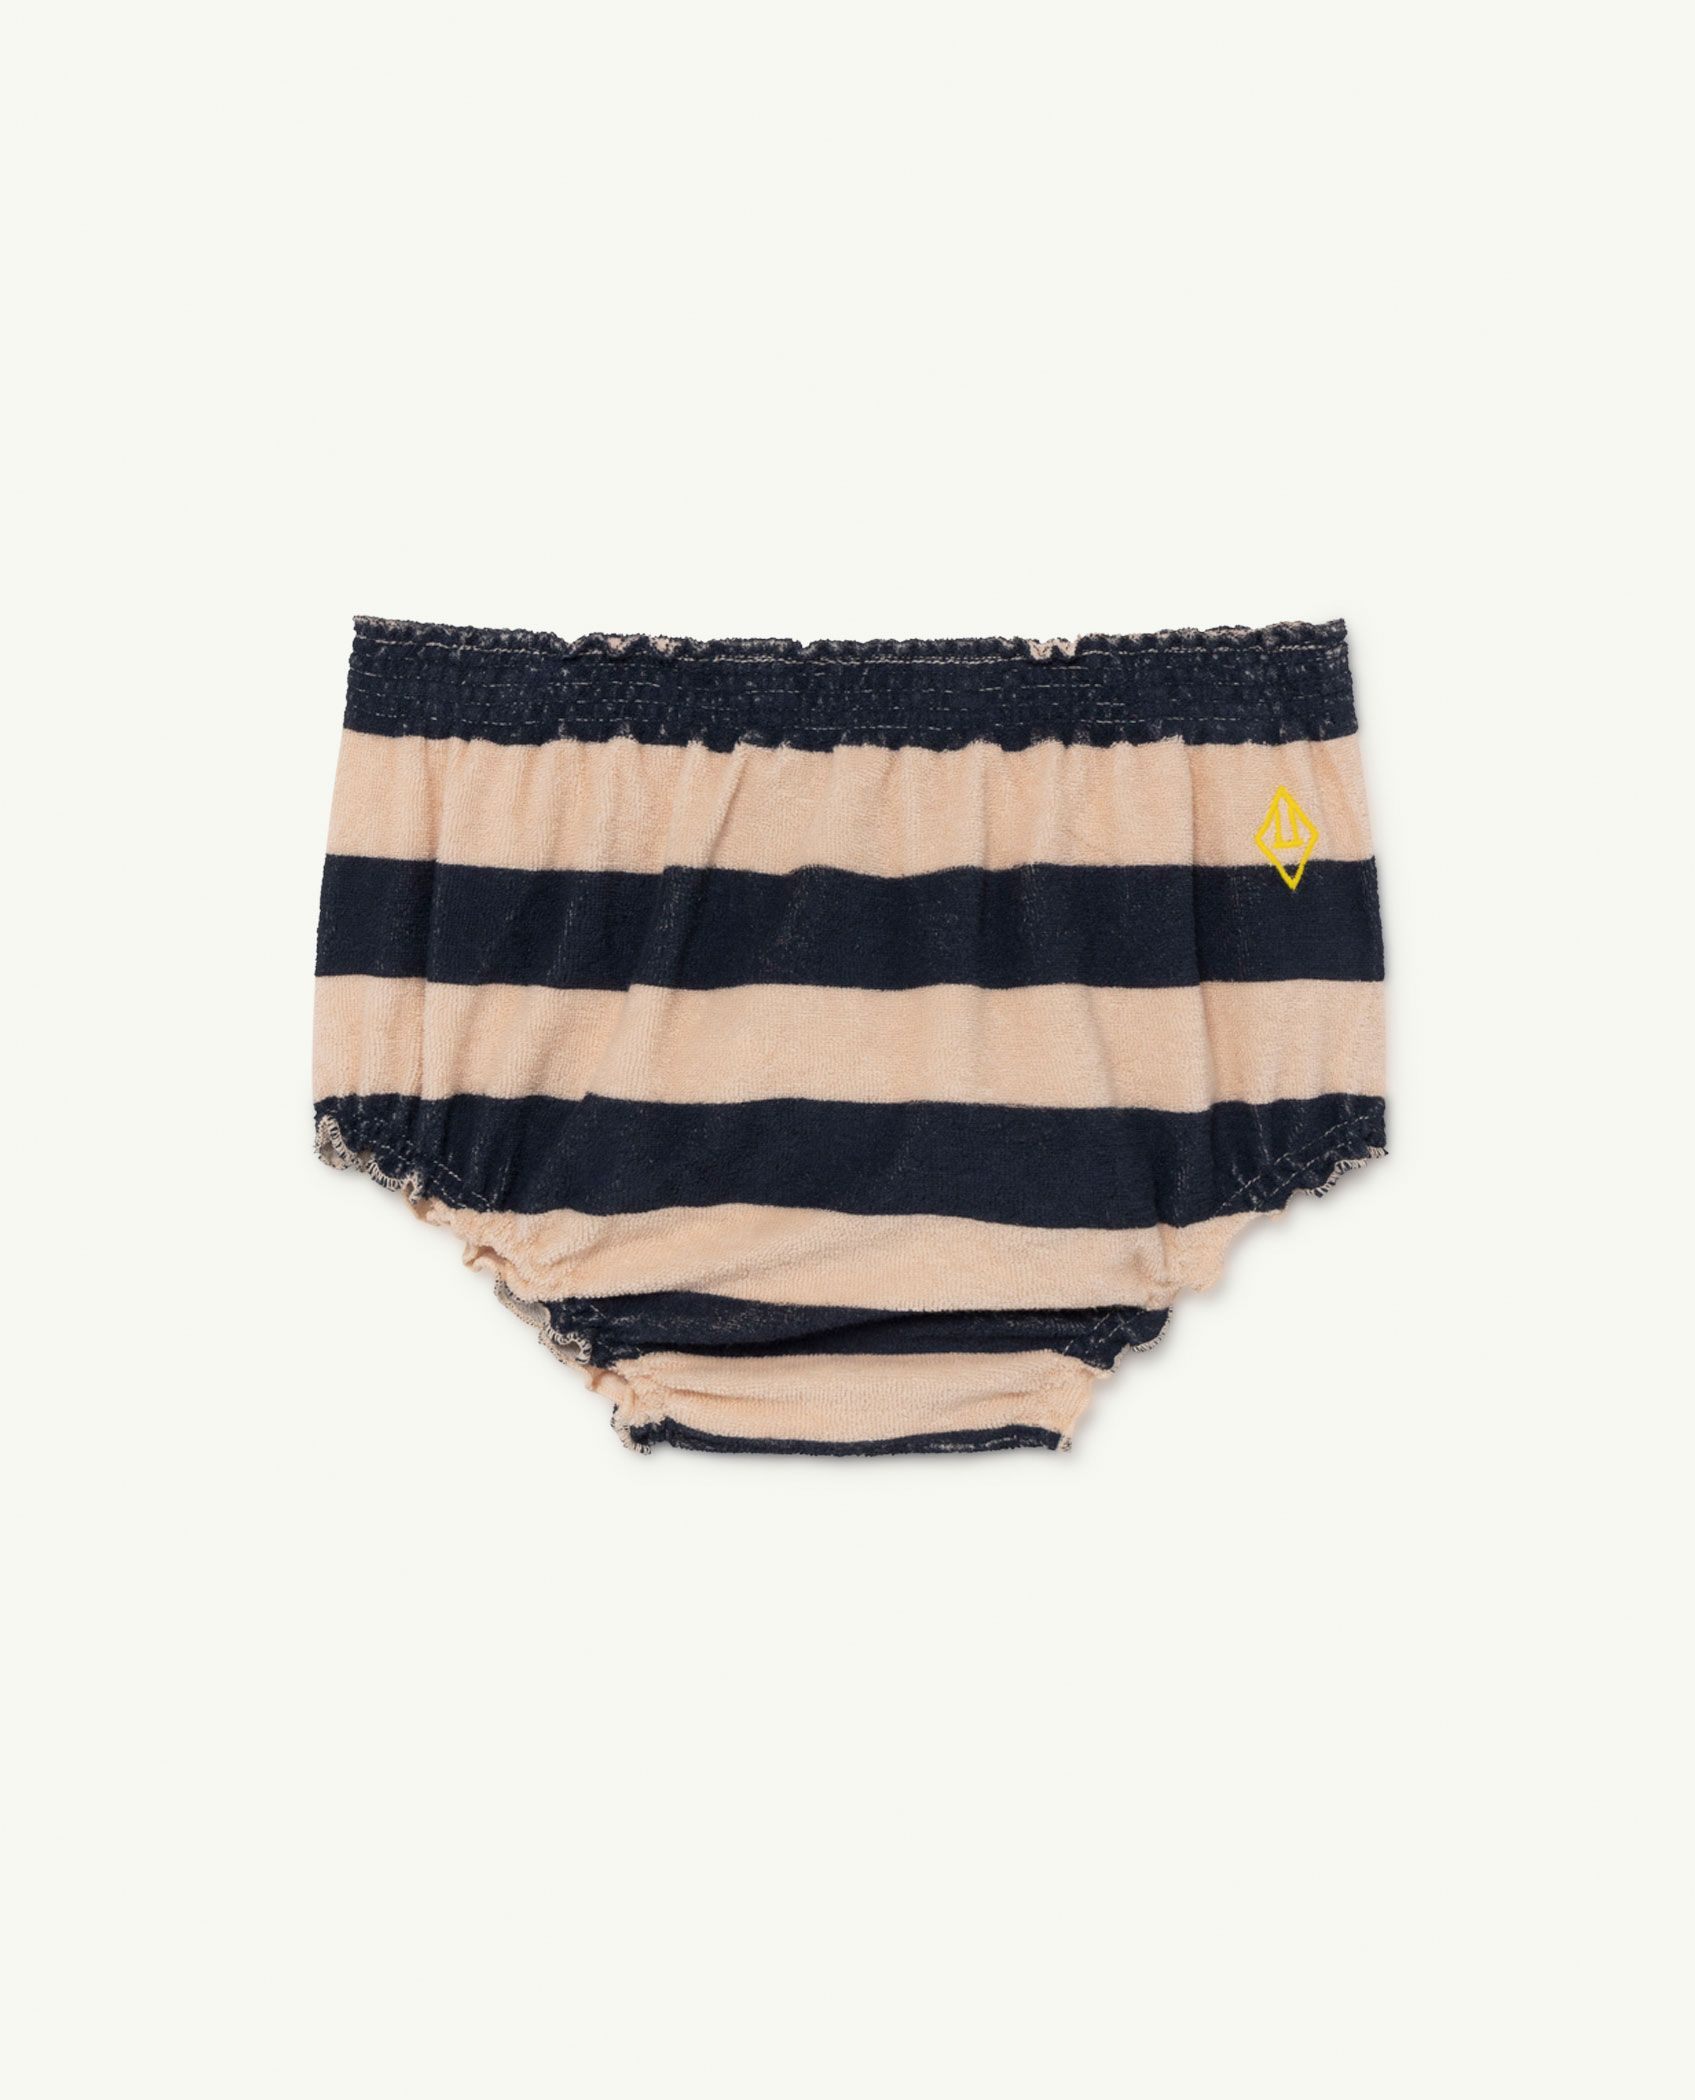 Peachy Stripes Toads Baby Culotte img-1